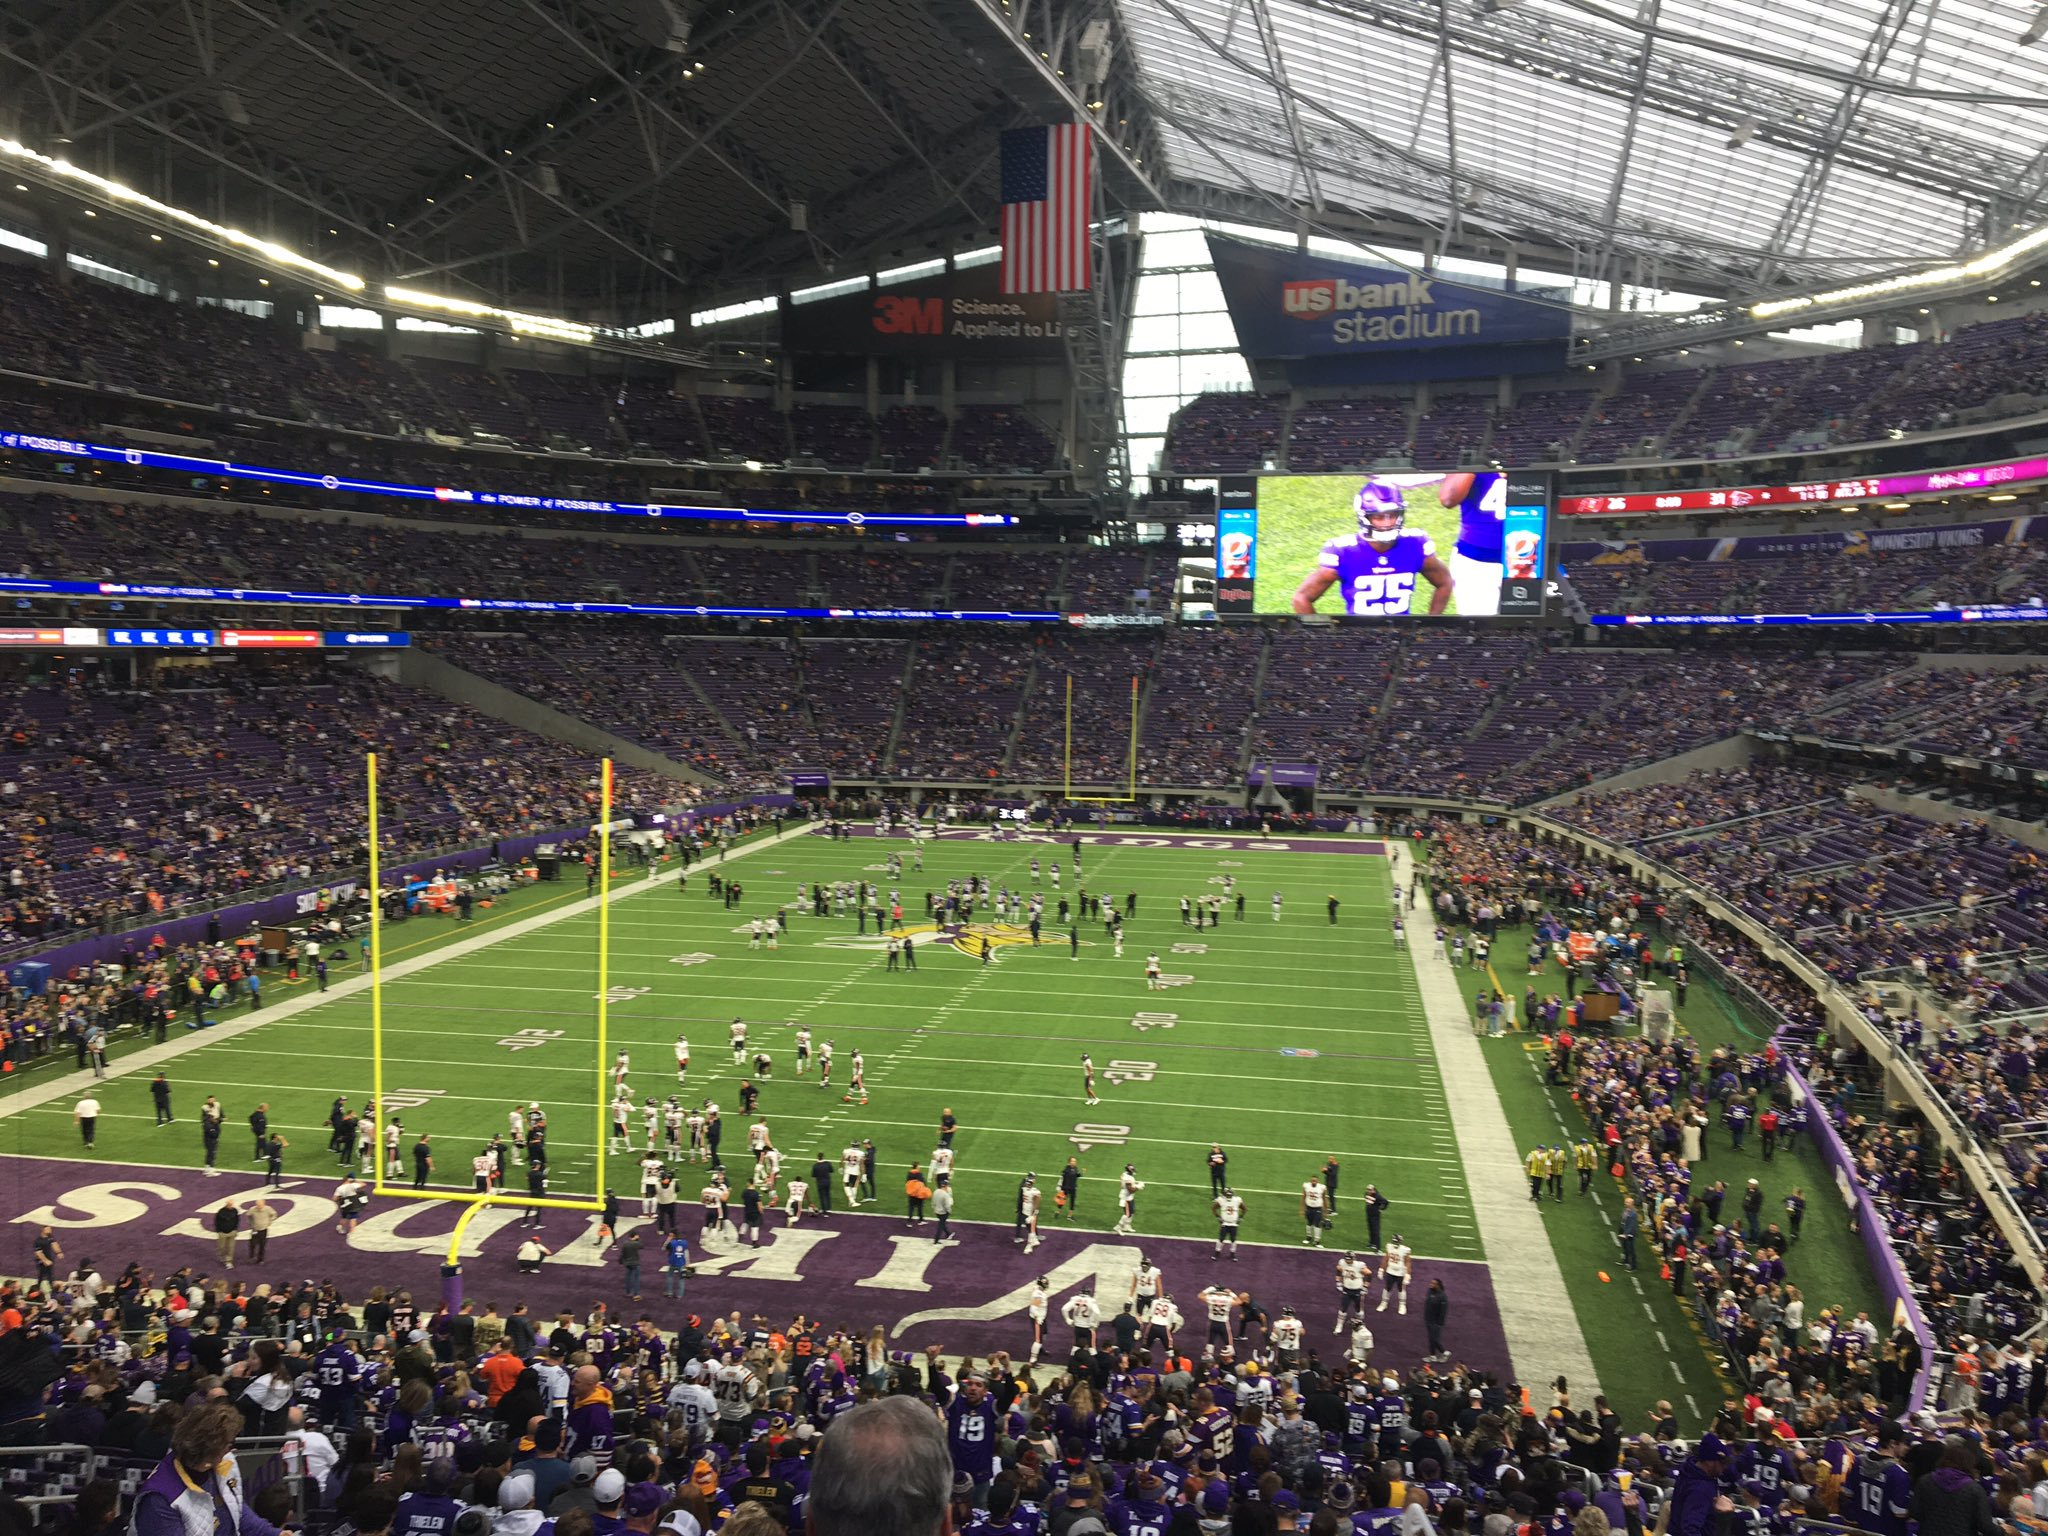 View from the lower level seats at U.S. Bank Stadium during a Minnesota Vikings game.